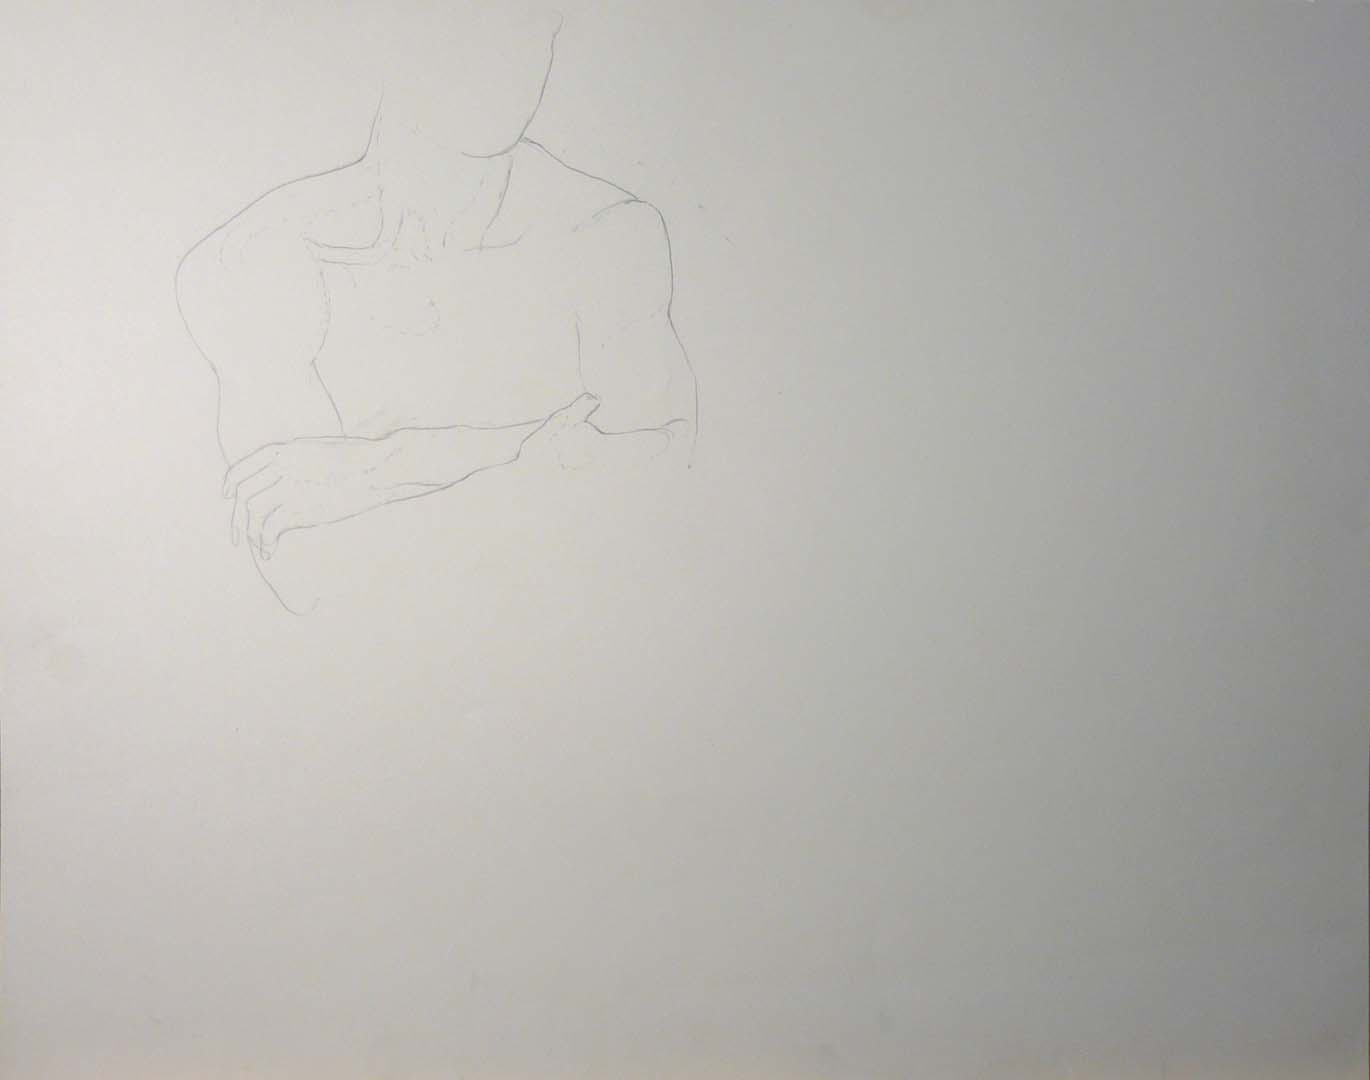 Male with Crosed Arms Pencil 18.875 x 22.875